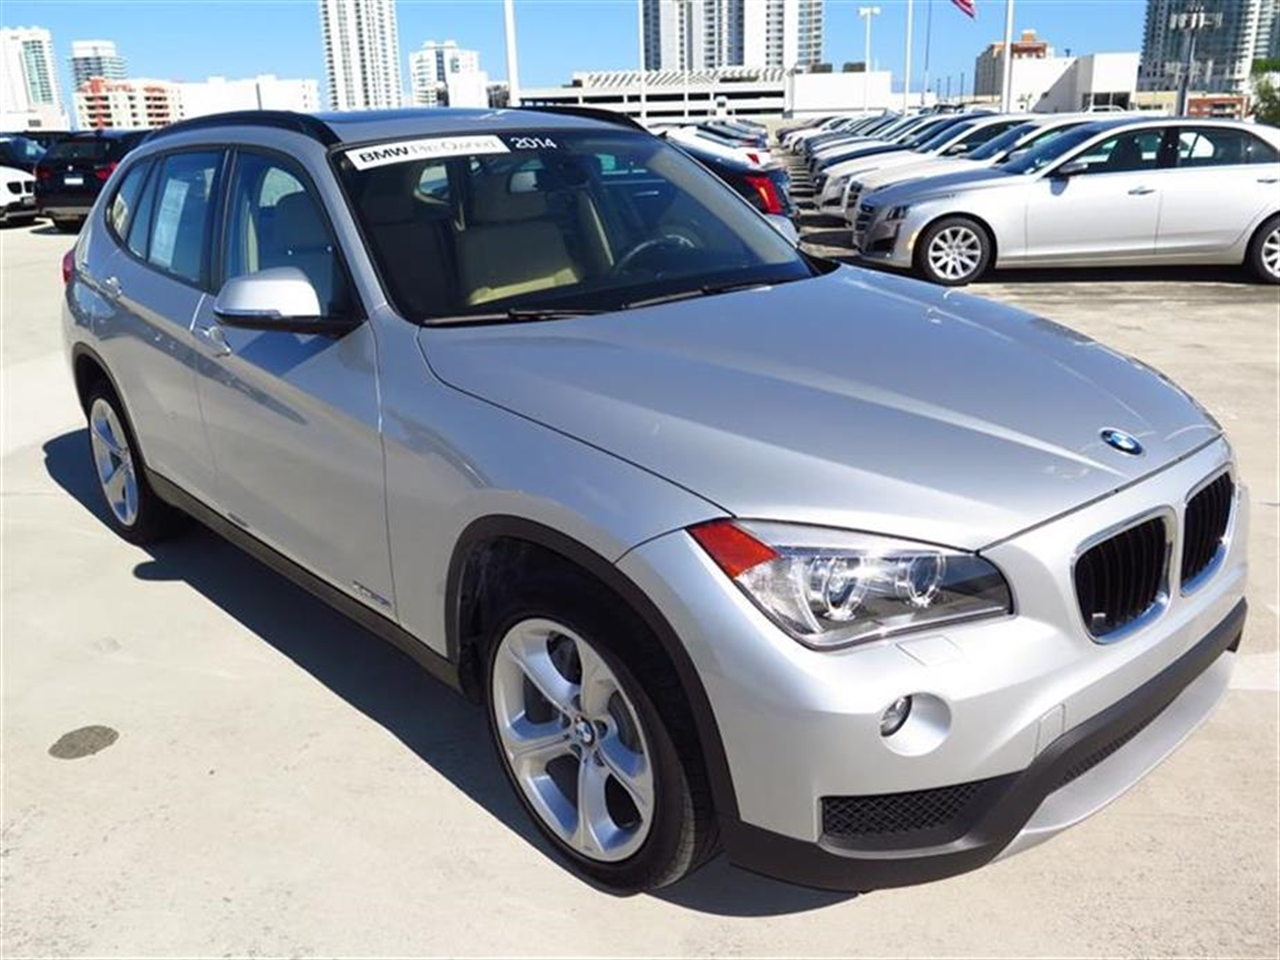 2014 BMW X1 AWD 4dr xDrive35i 8542 miles 2 Seatback Storage Pockets 3 12V DC Power Outlets LEAT